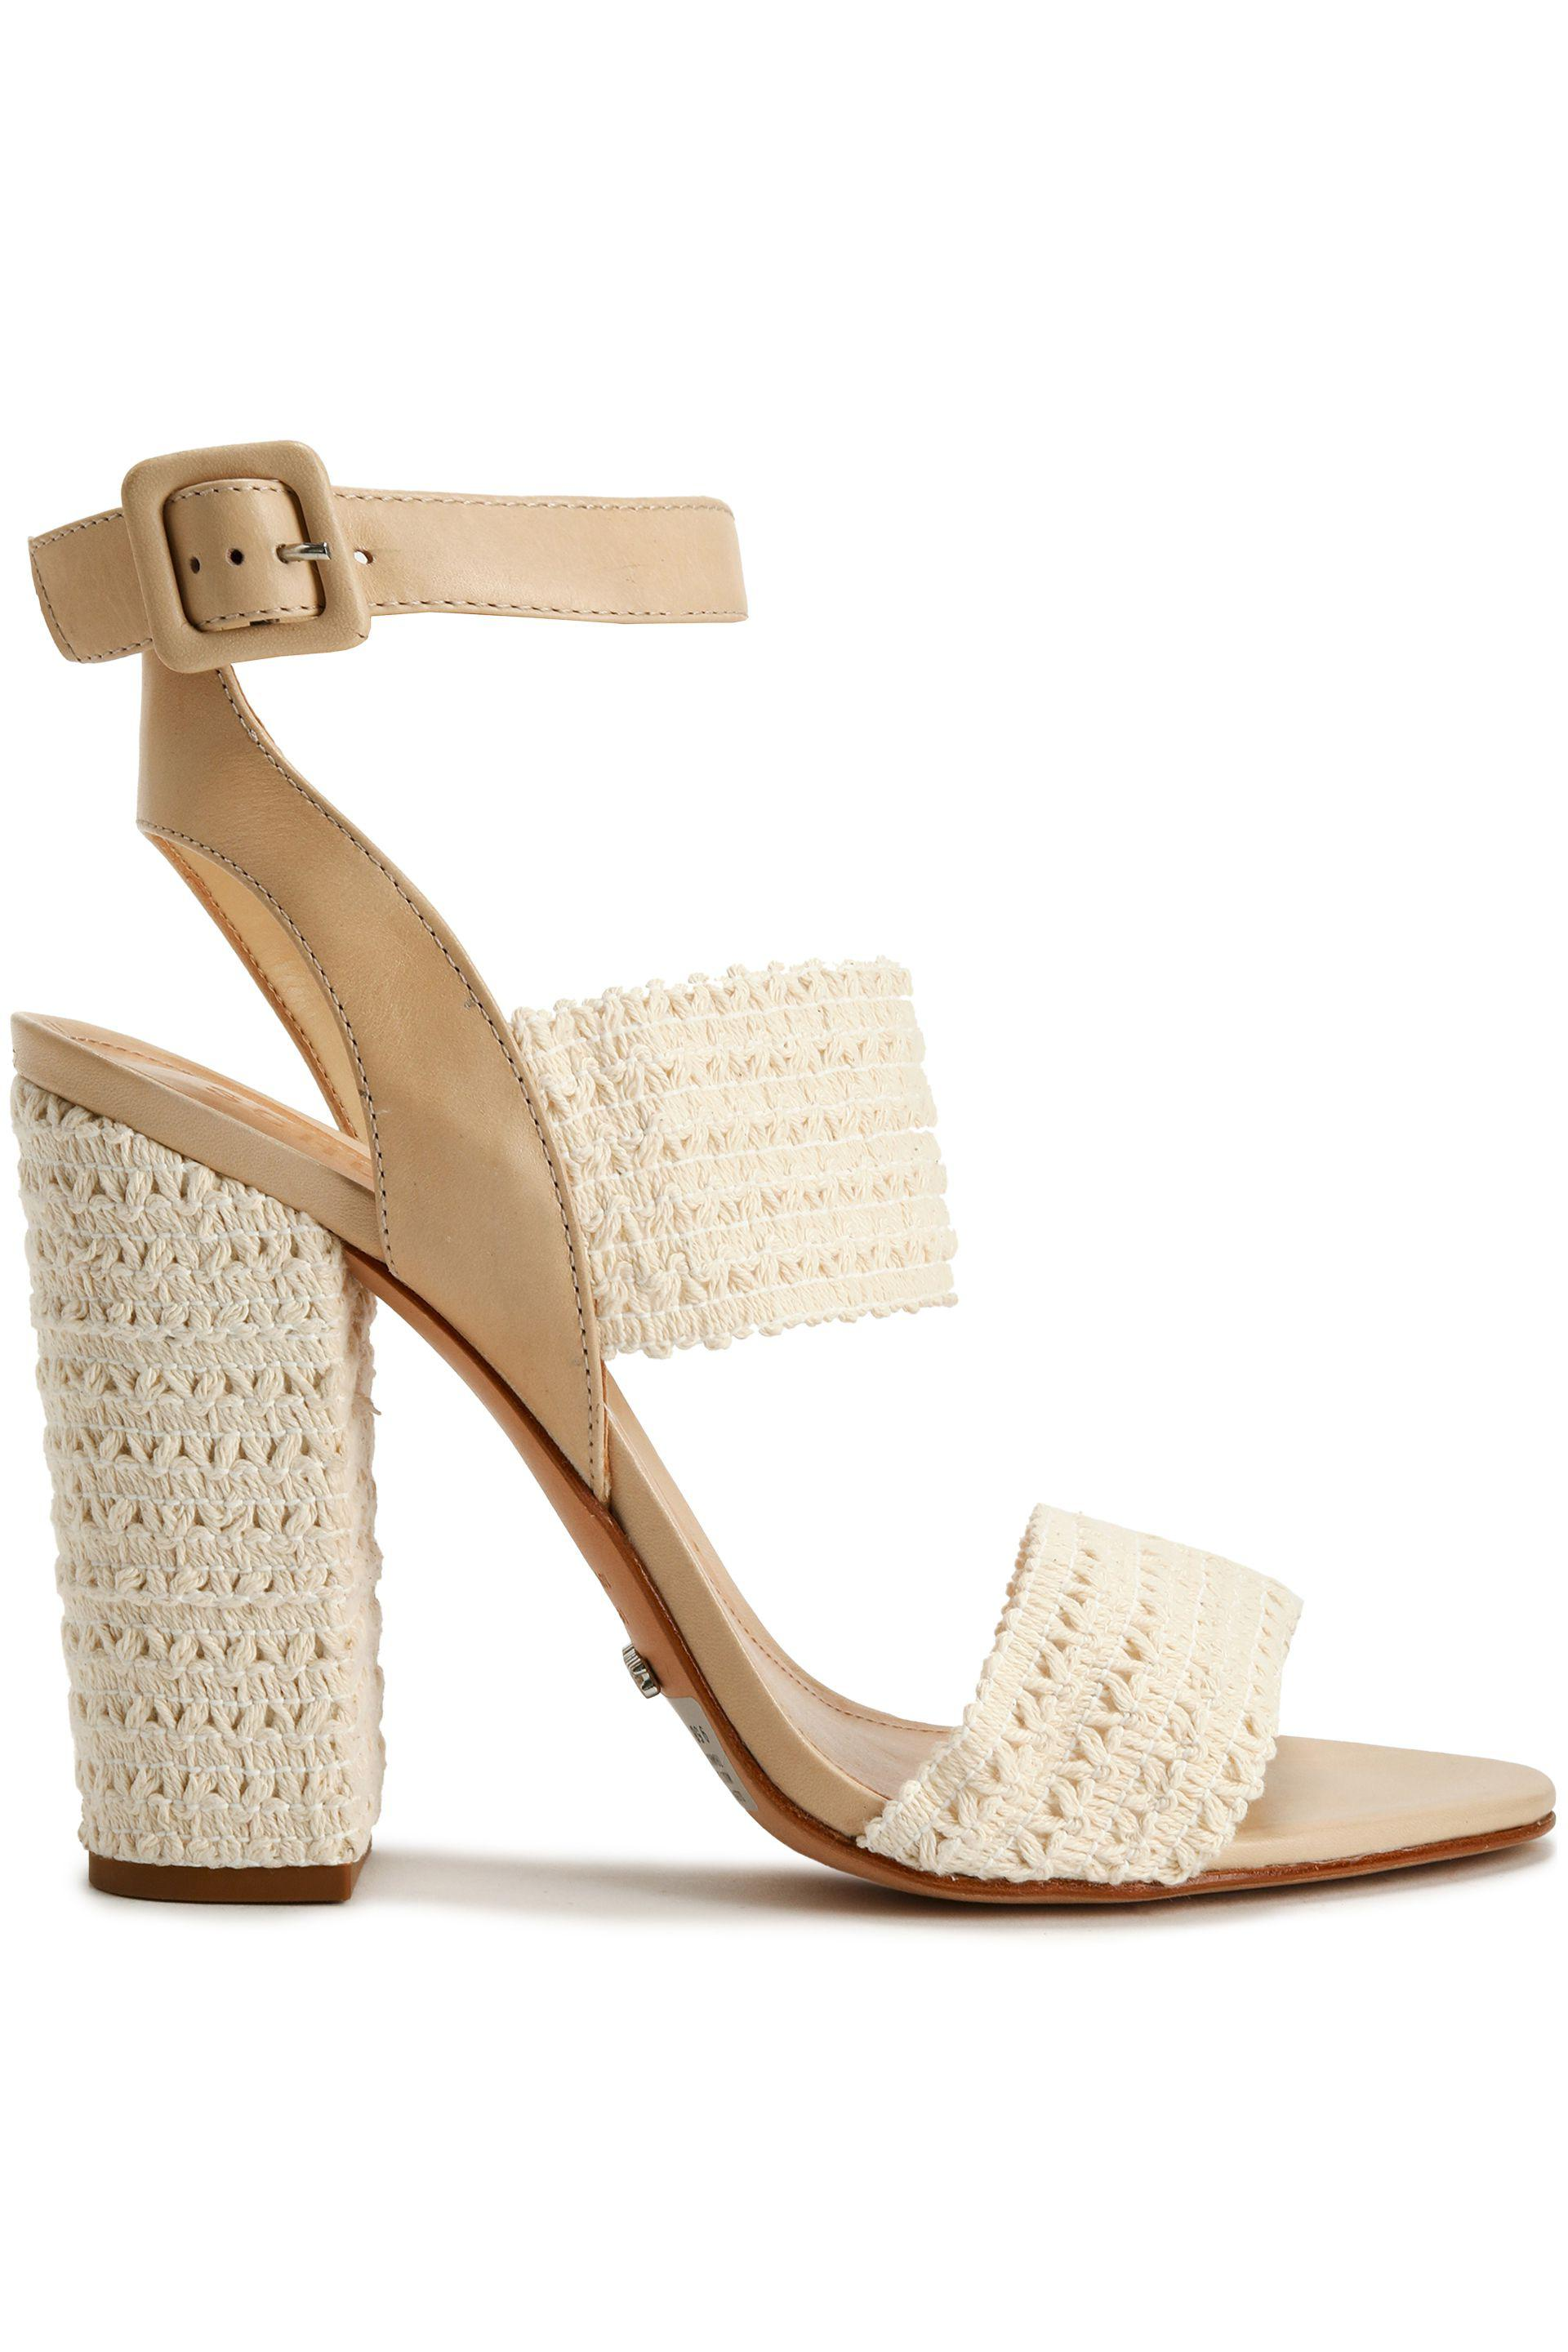 Schutz. Women's Crocheted And Leather Sandals